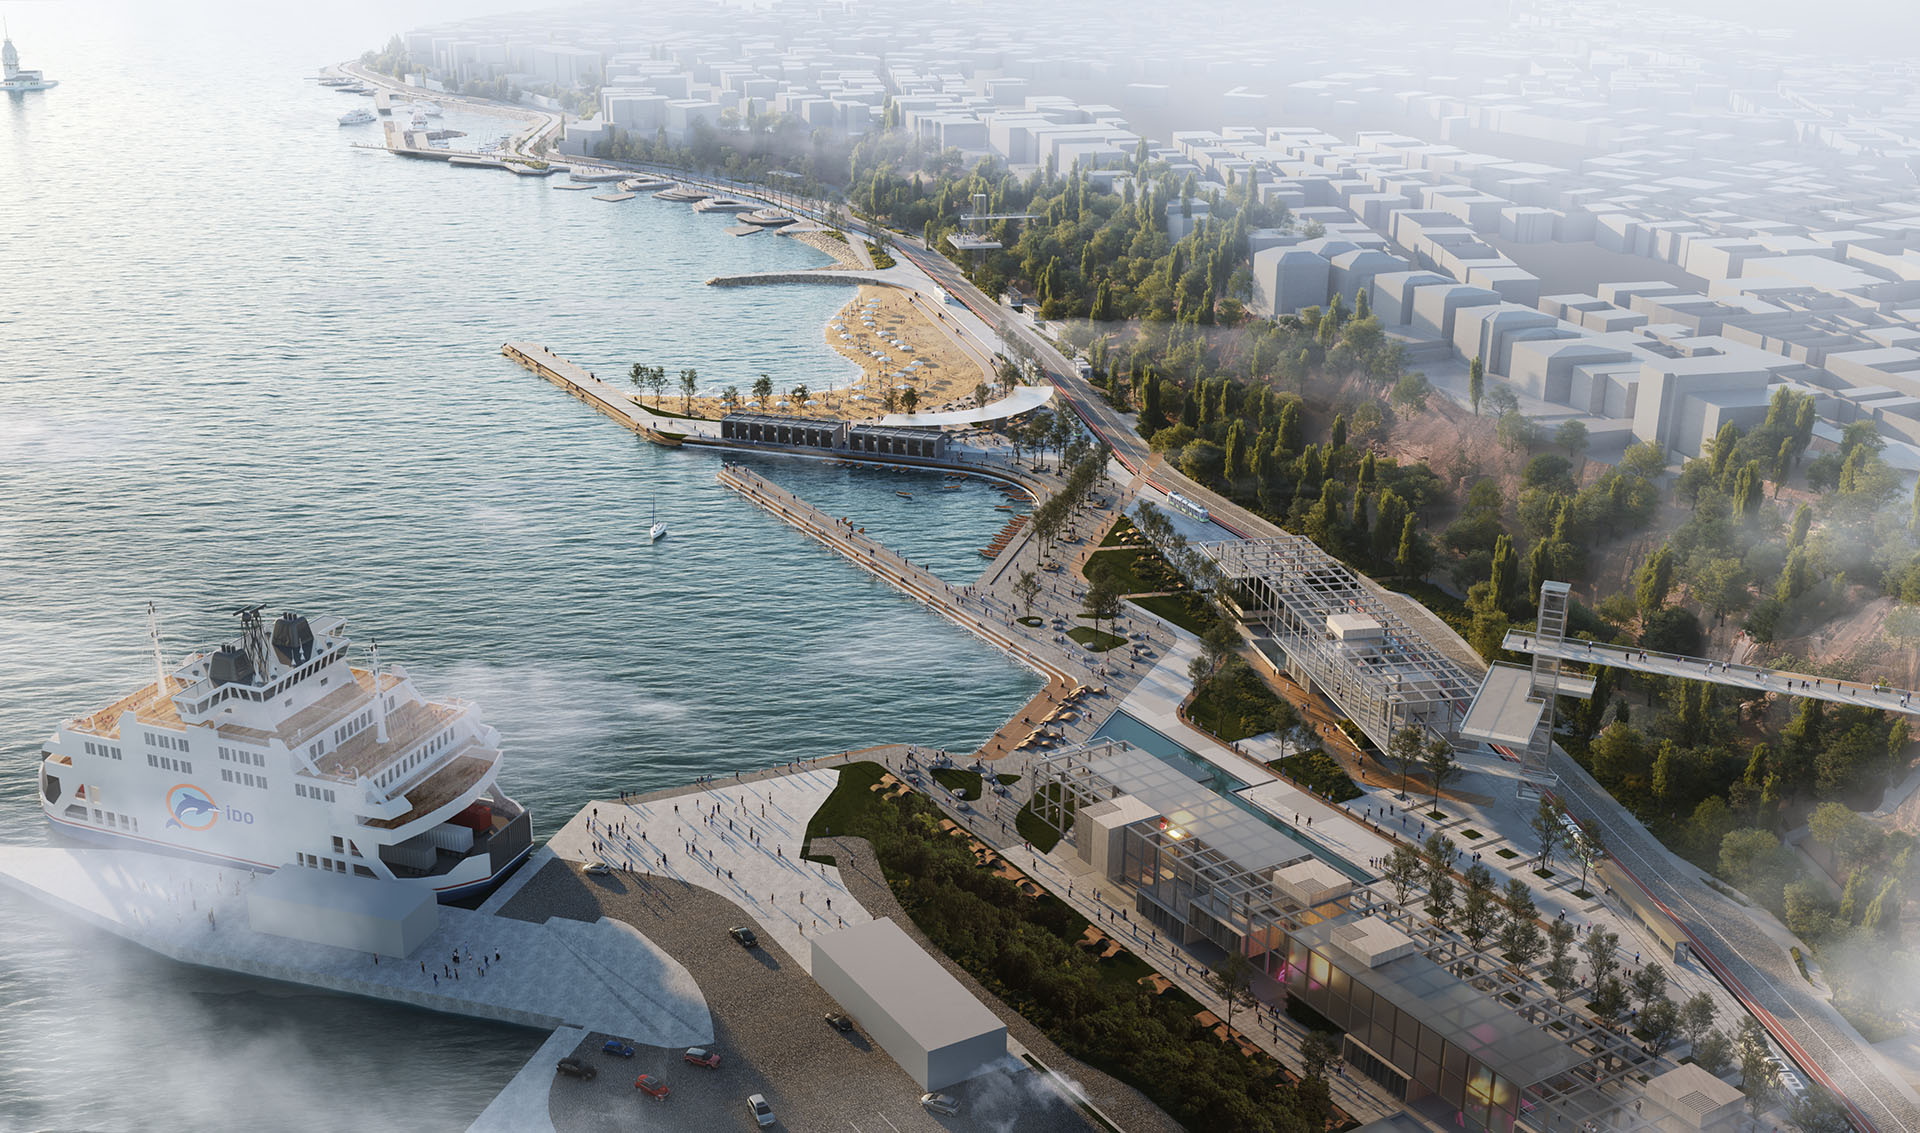 render_ivabox_Mdesign_istanbul_salacak_Competition_3